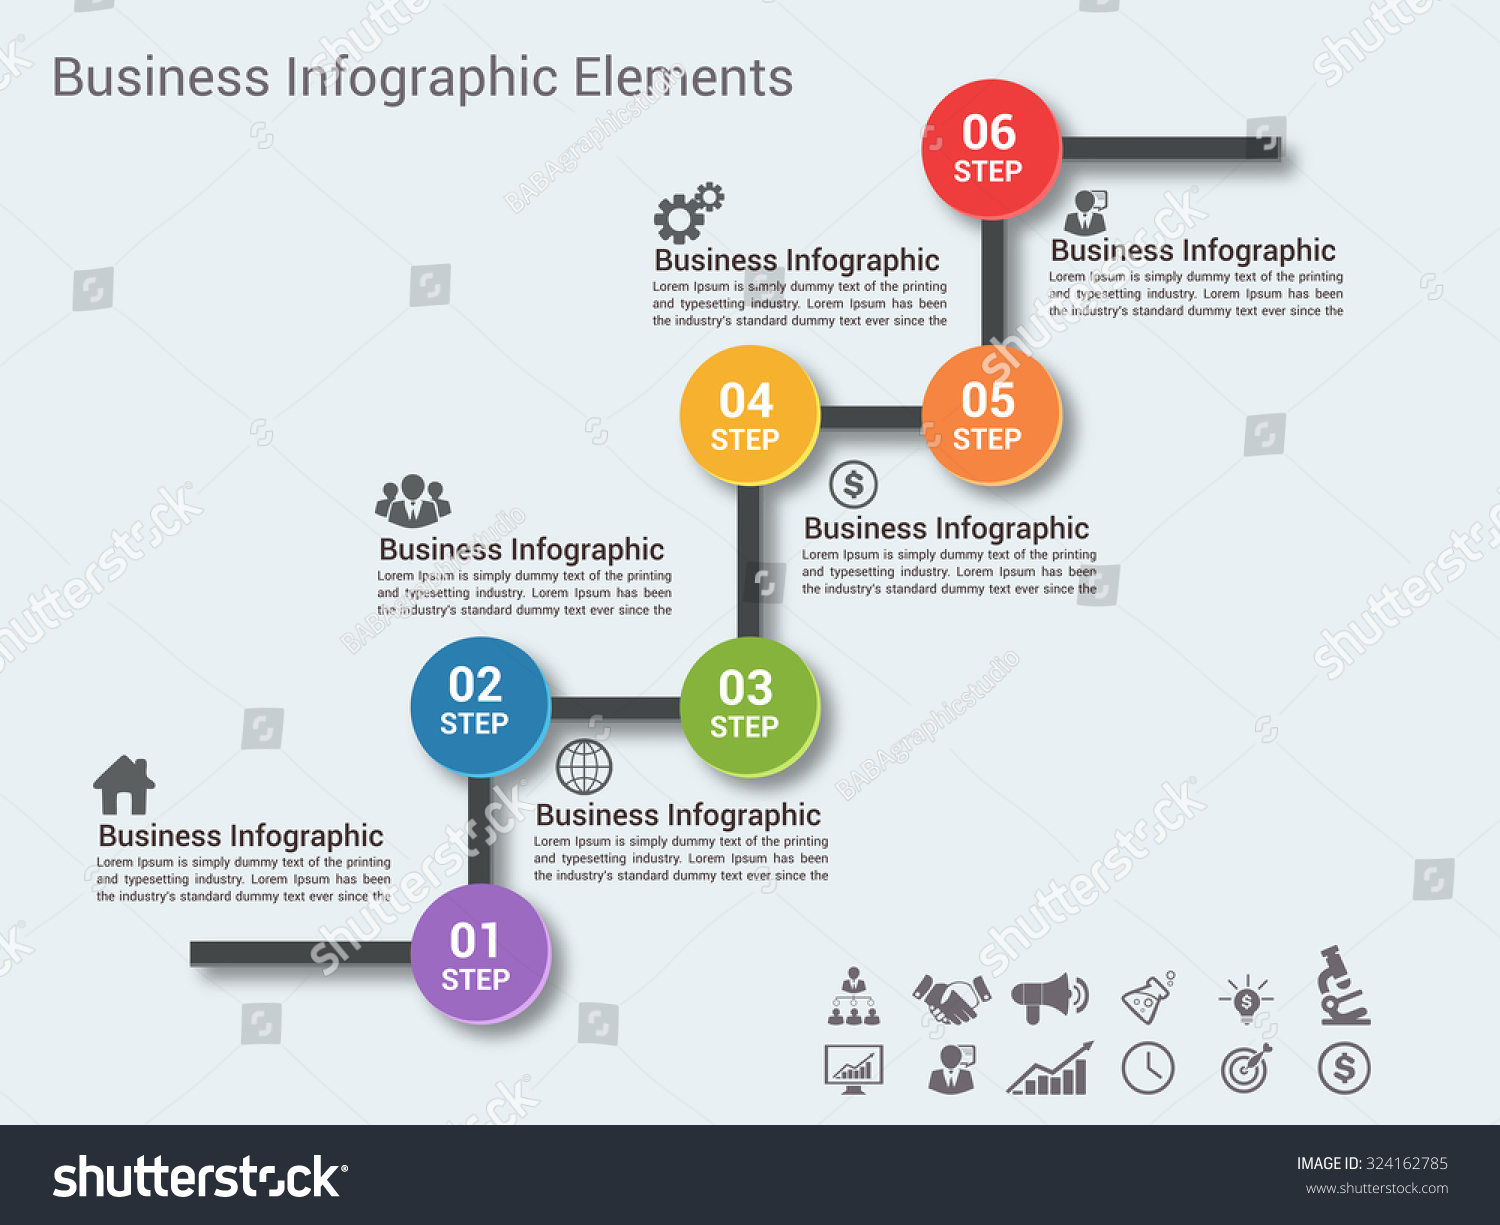 Business Timeline Infographic Template Vector Illustration Stock - Timeline infographic template